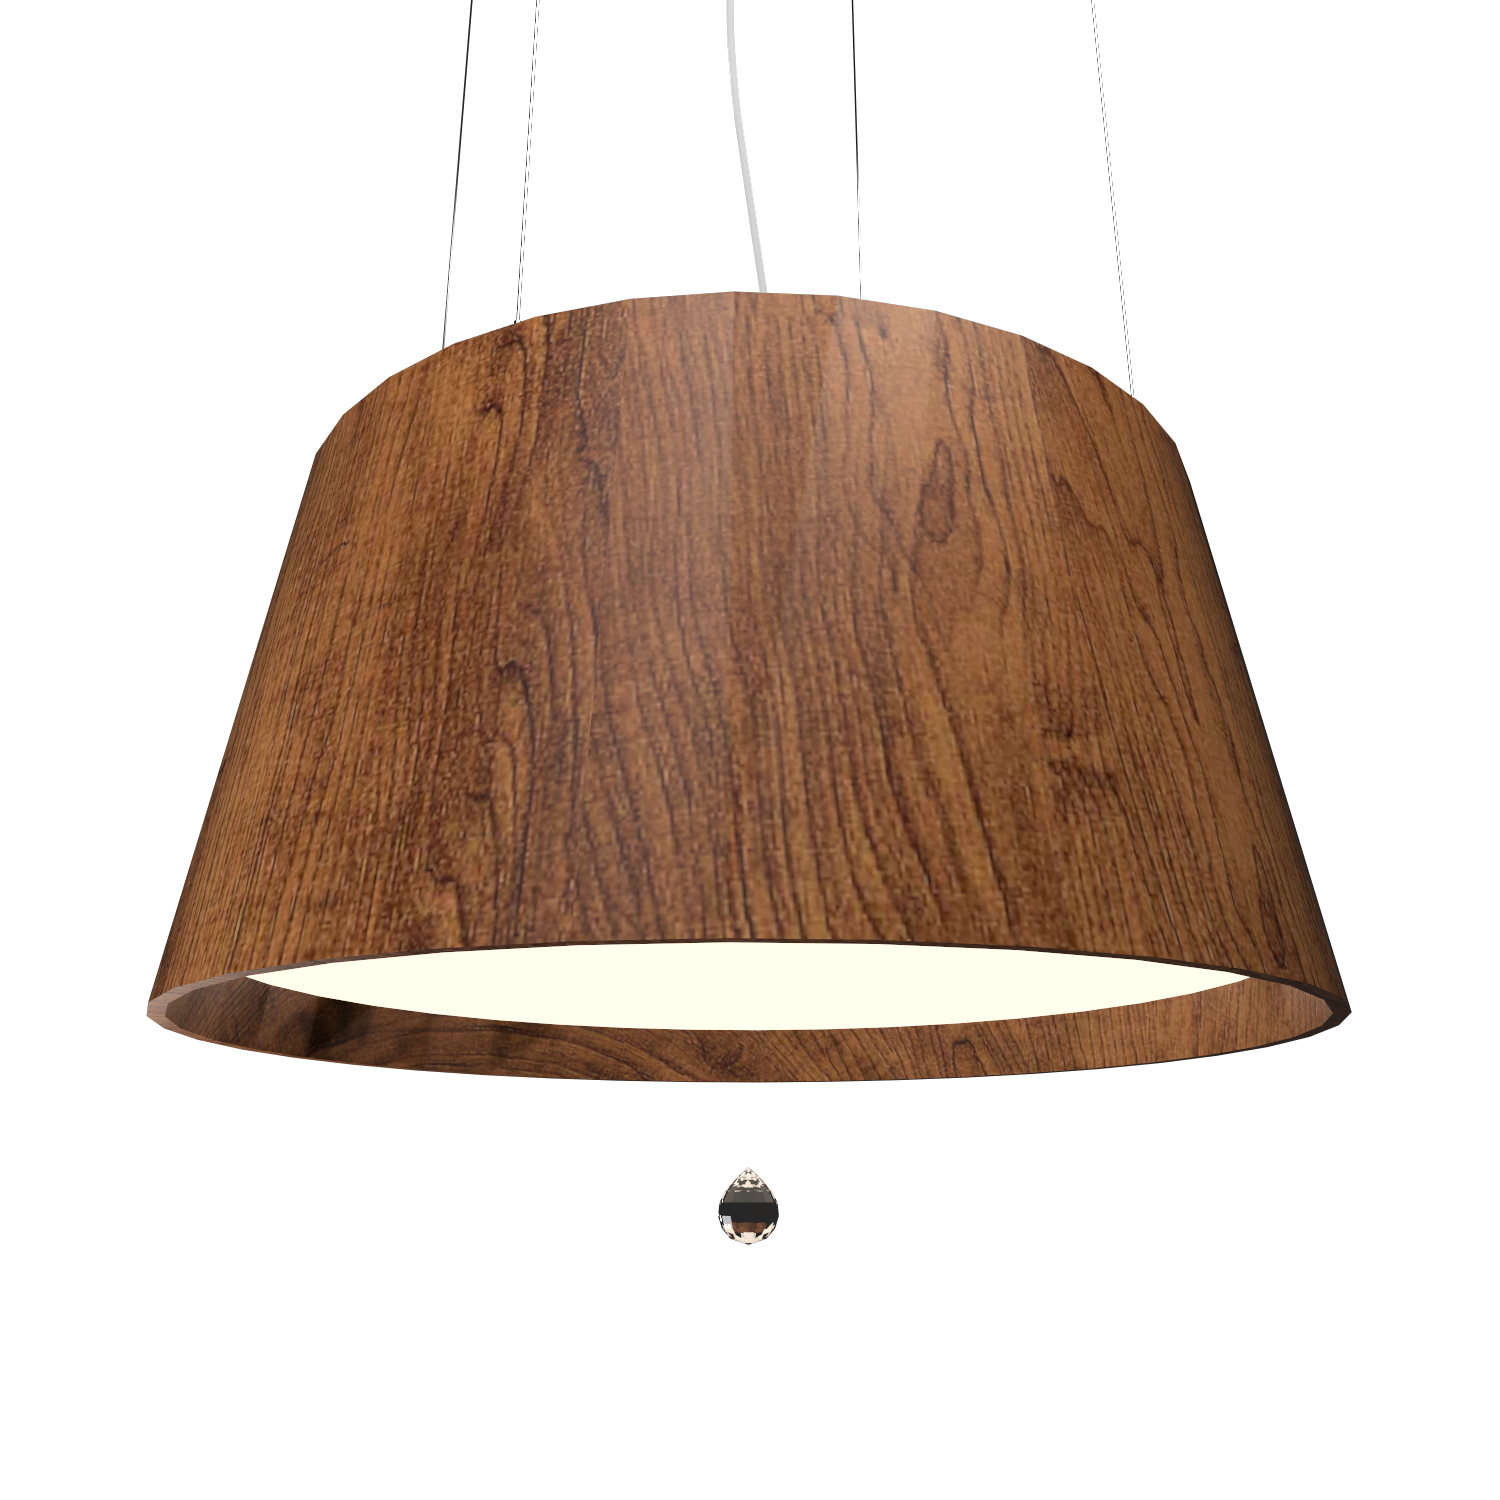 Pendant Lamp Conical with Crystal 255C - Cristais Line Accord Lighting | 06. Imbuia